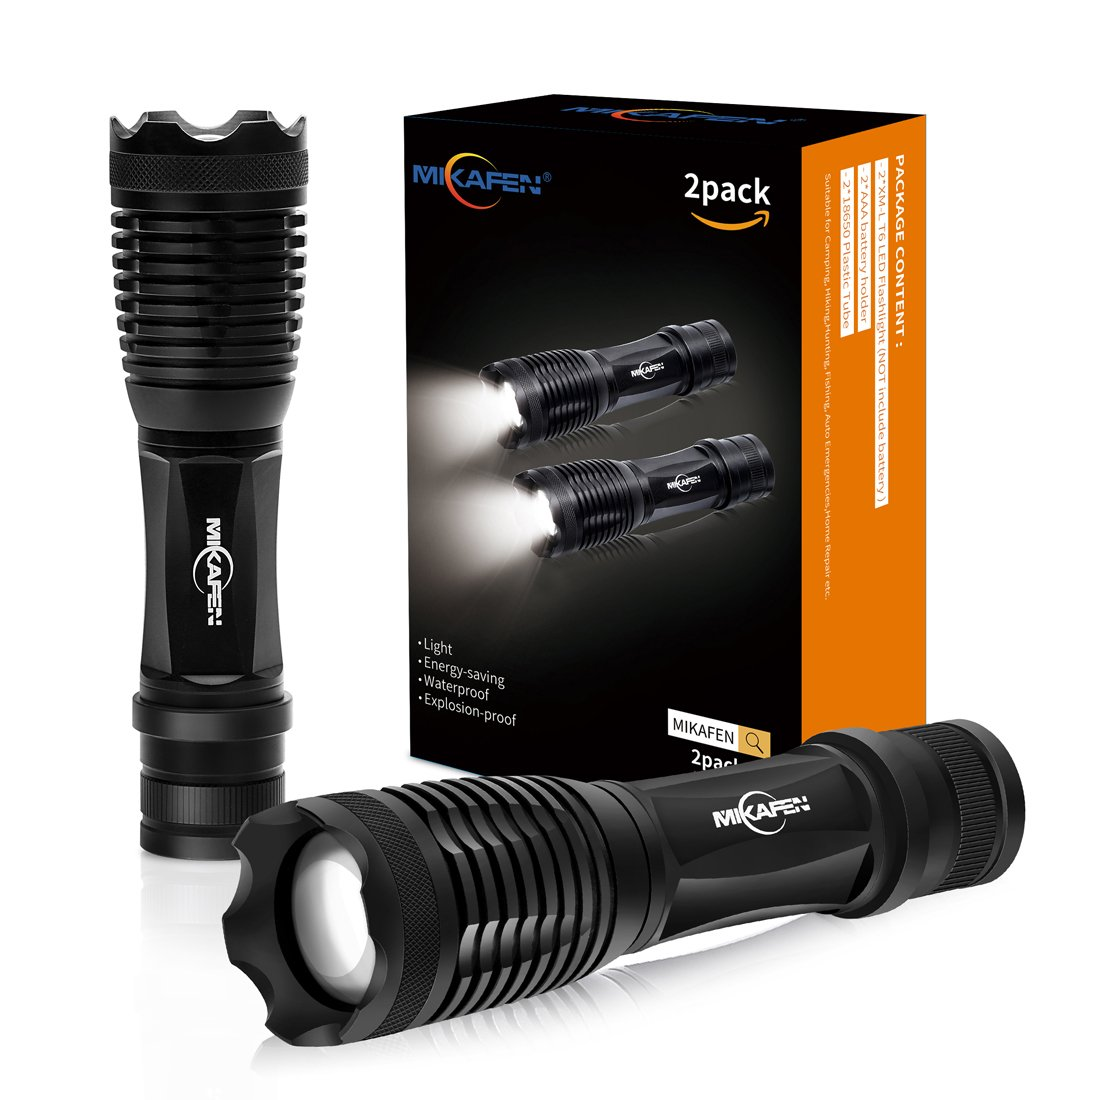 [2 PACK] LED Tactical Flashlight 5 Modes,Flashlights High Lumens, Zoomable, Water Resistant, Handheld Flashlight - Best For Camping, Hiking,Auto Emergencies, and Home Repair